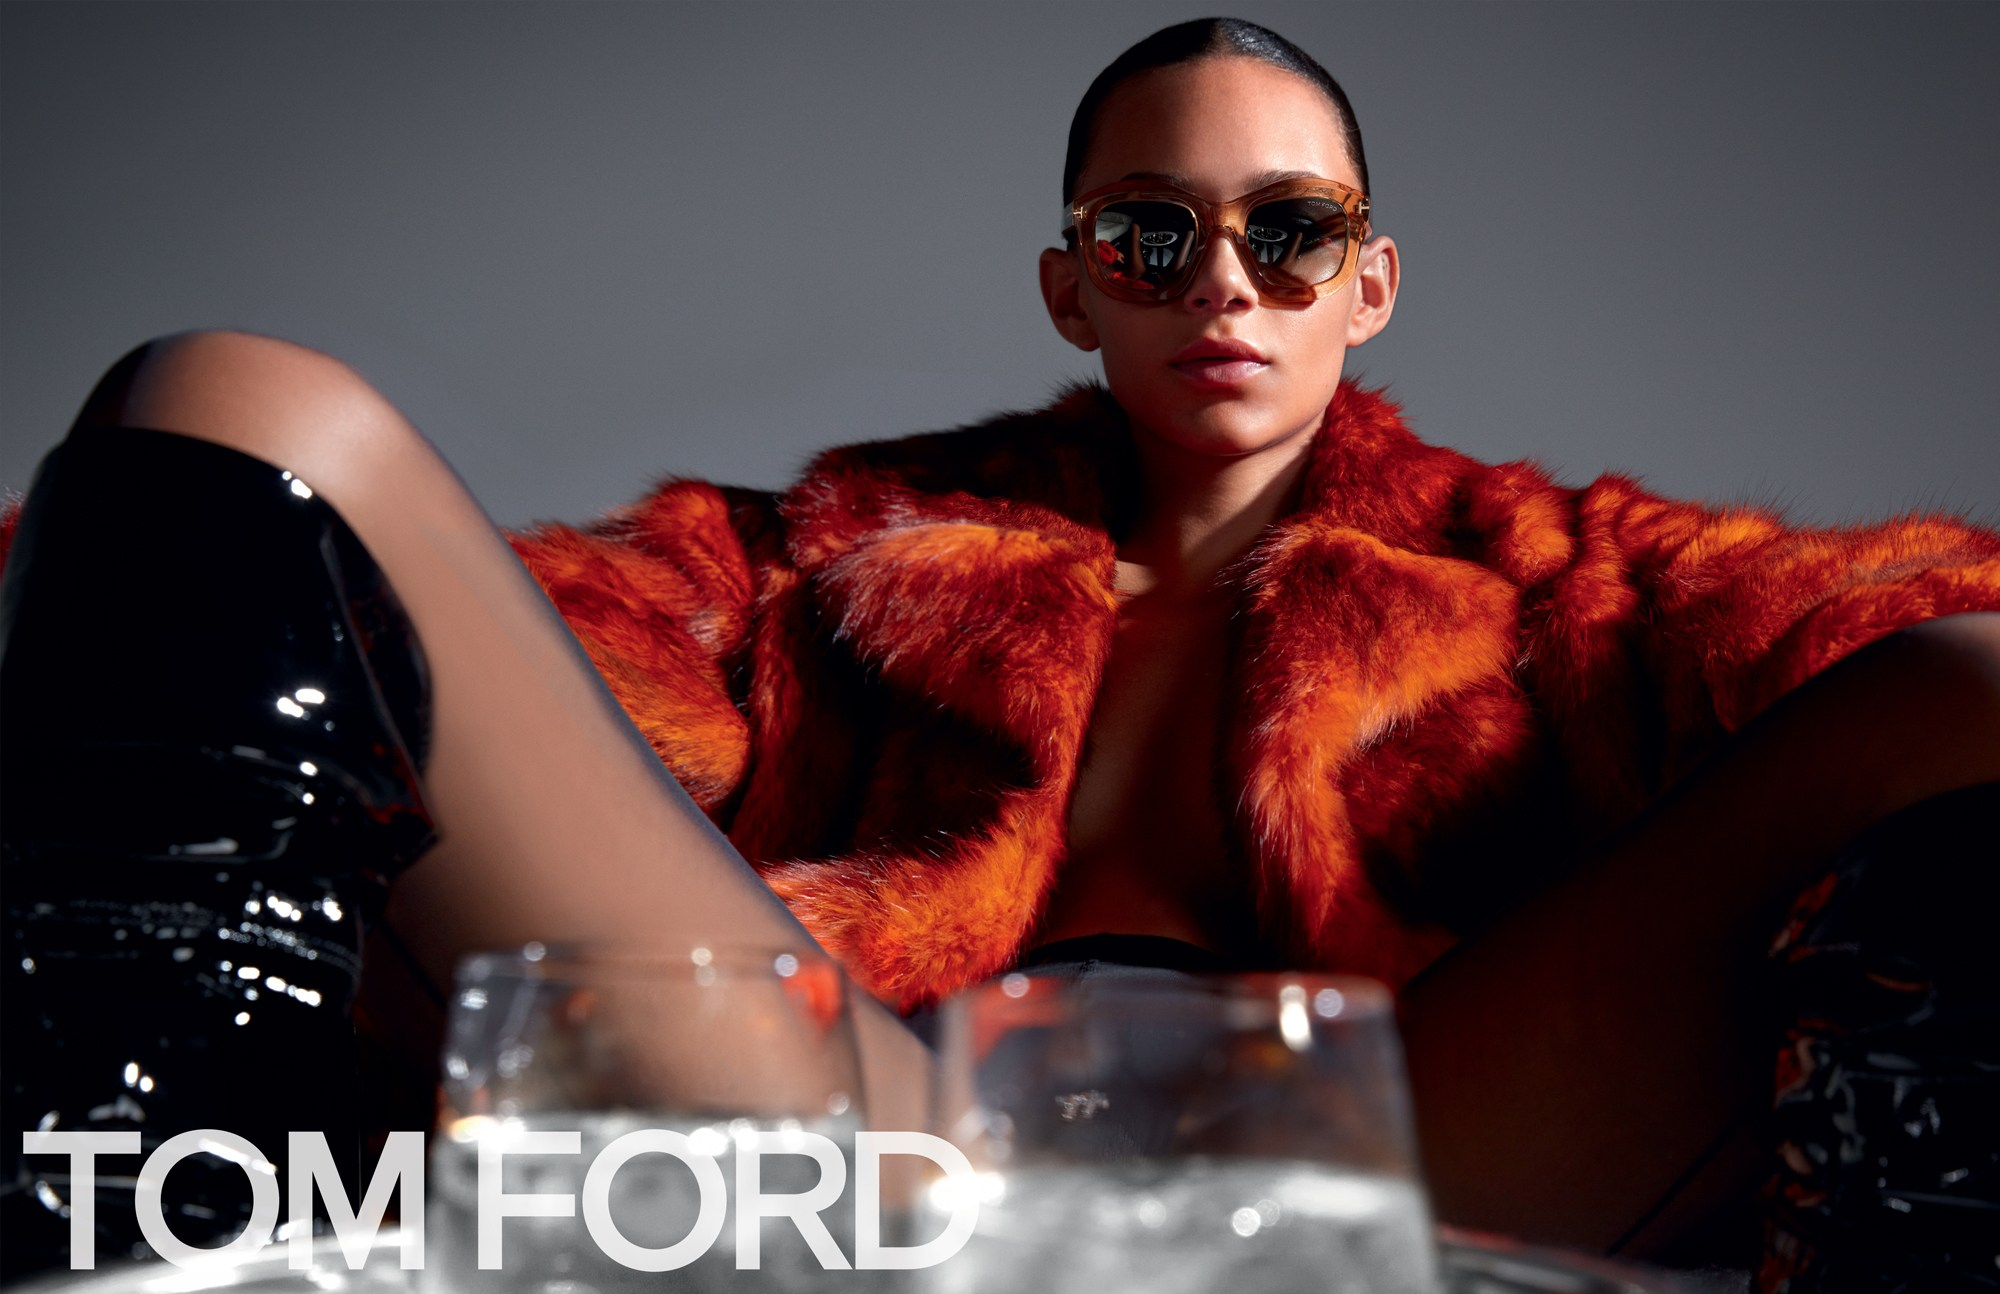 Tom-Ford-fall-2017-ad-campaign-004